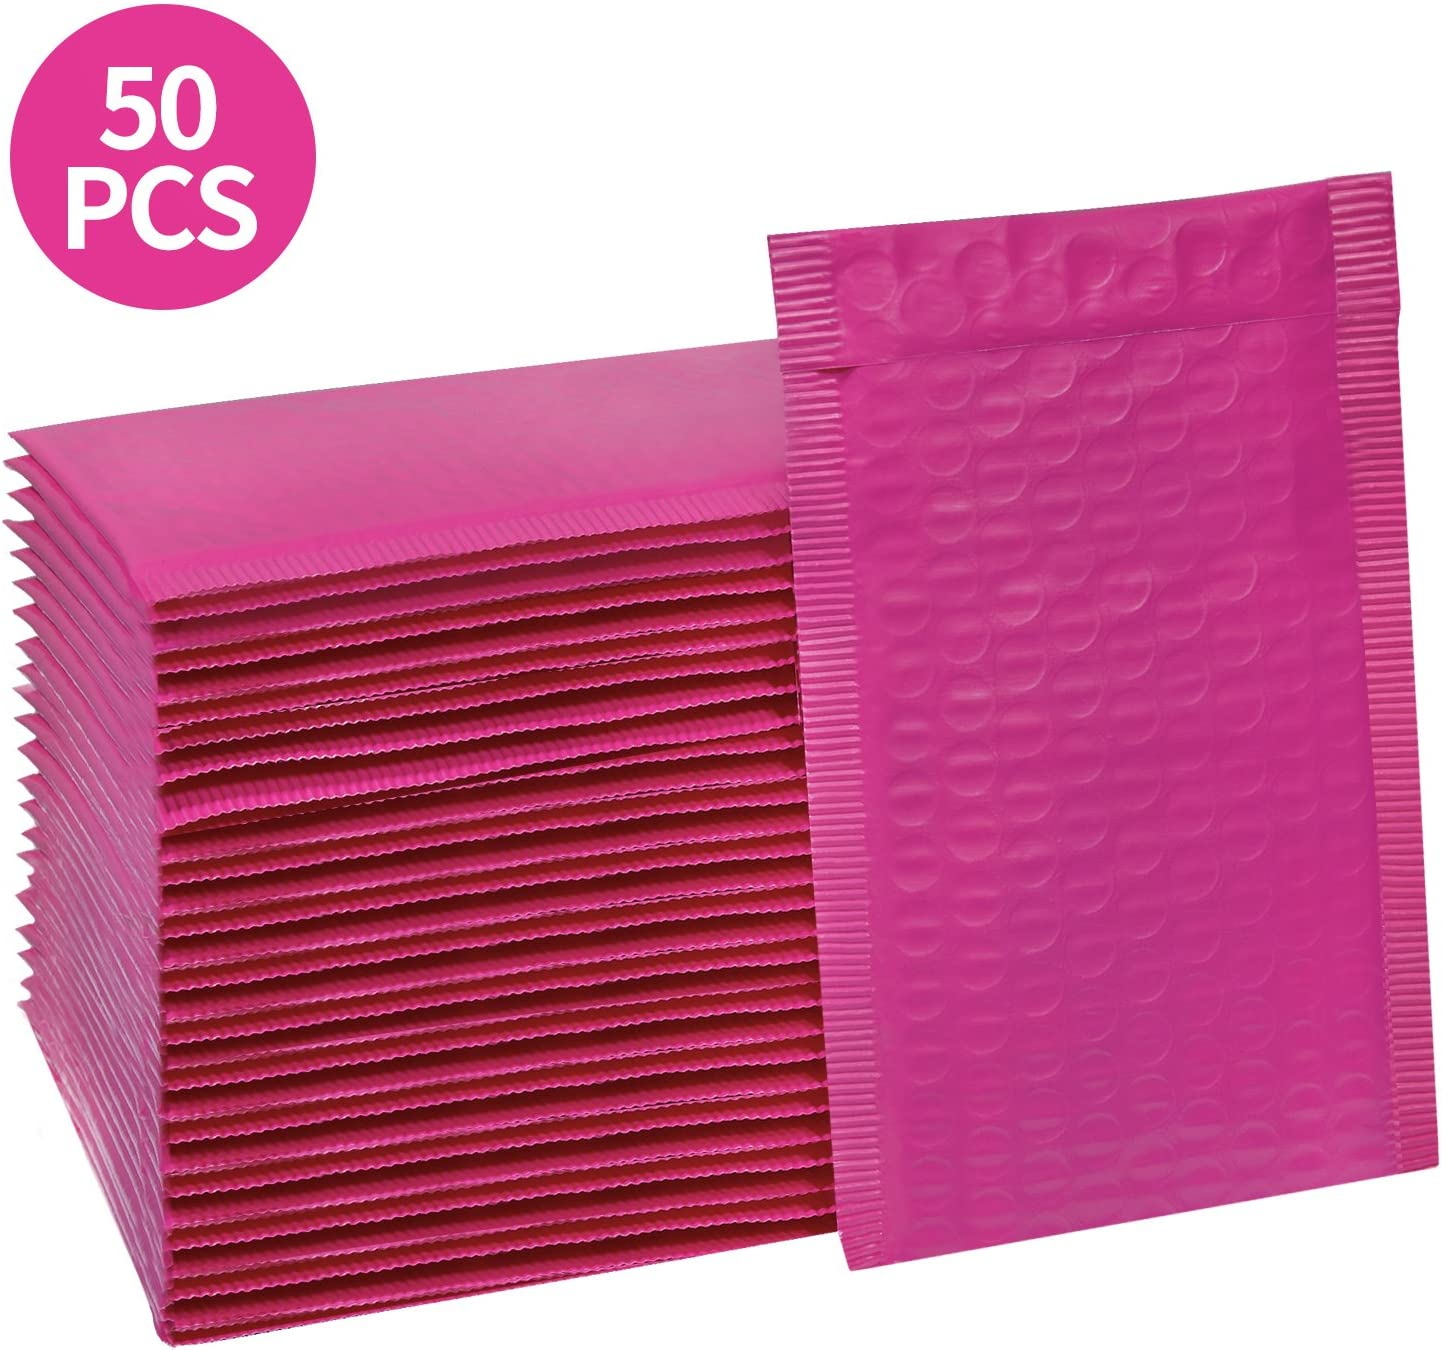 HBlife #000 4x8 Inches Poly Bubble Mailers Self Seal Hot Pink Padded Envelopes, Pack of 50 : Office Products